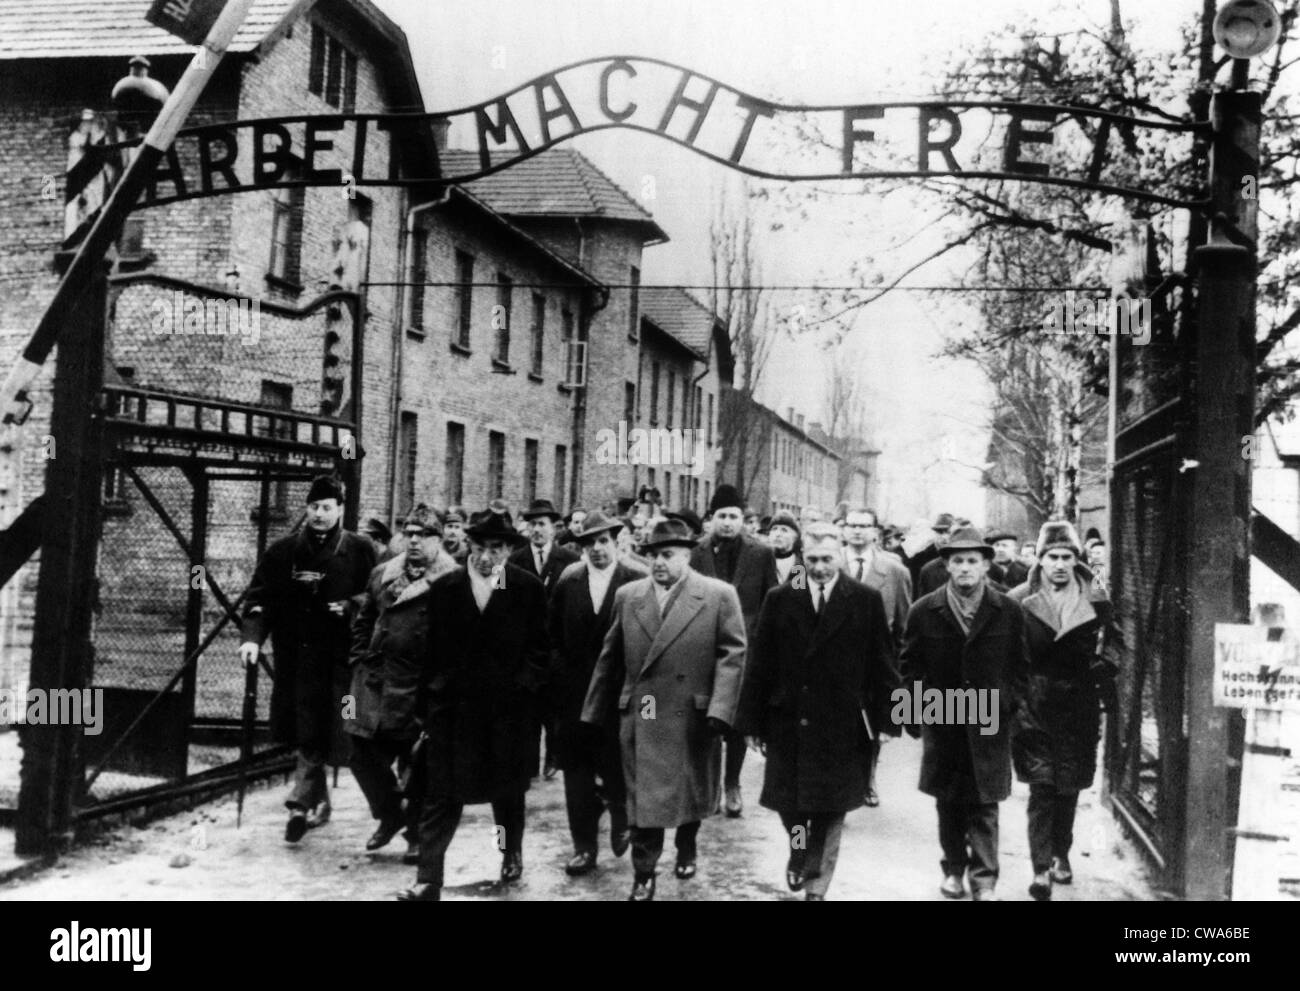 Members of the Frankfurt war crimes court leave the Auschwitz death camp. Judge Walter Hotz (center), director of - Stock Image